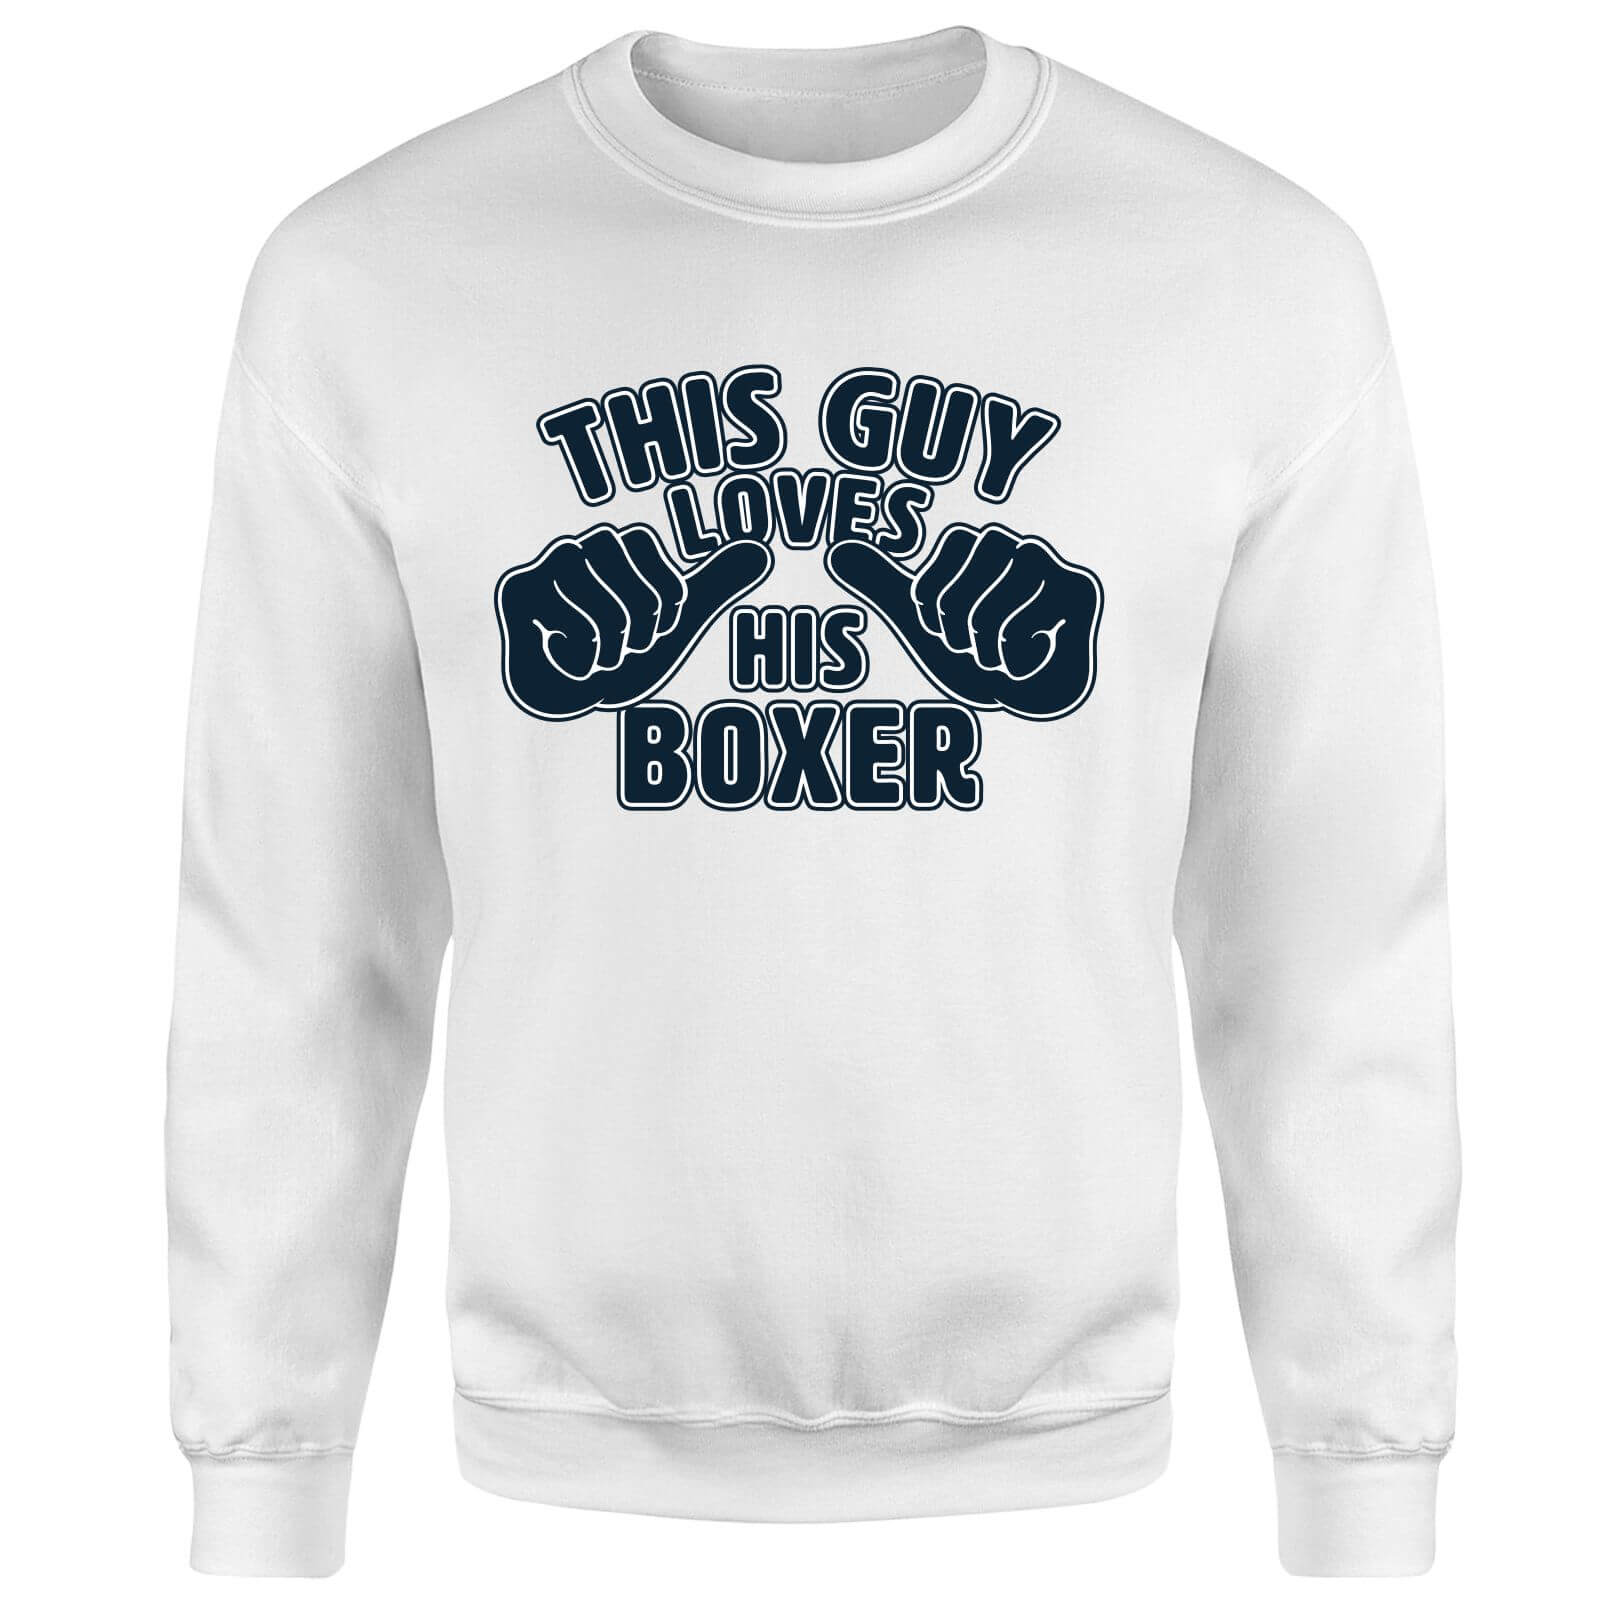 This Guy Loves His Boxer Sweatshirt - White